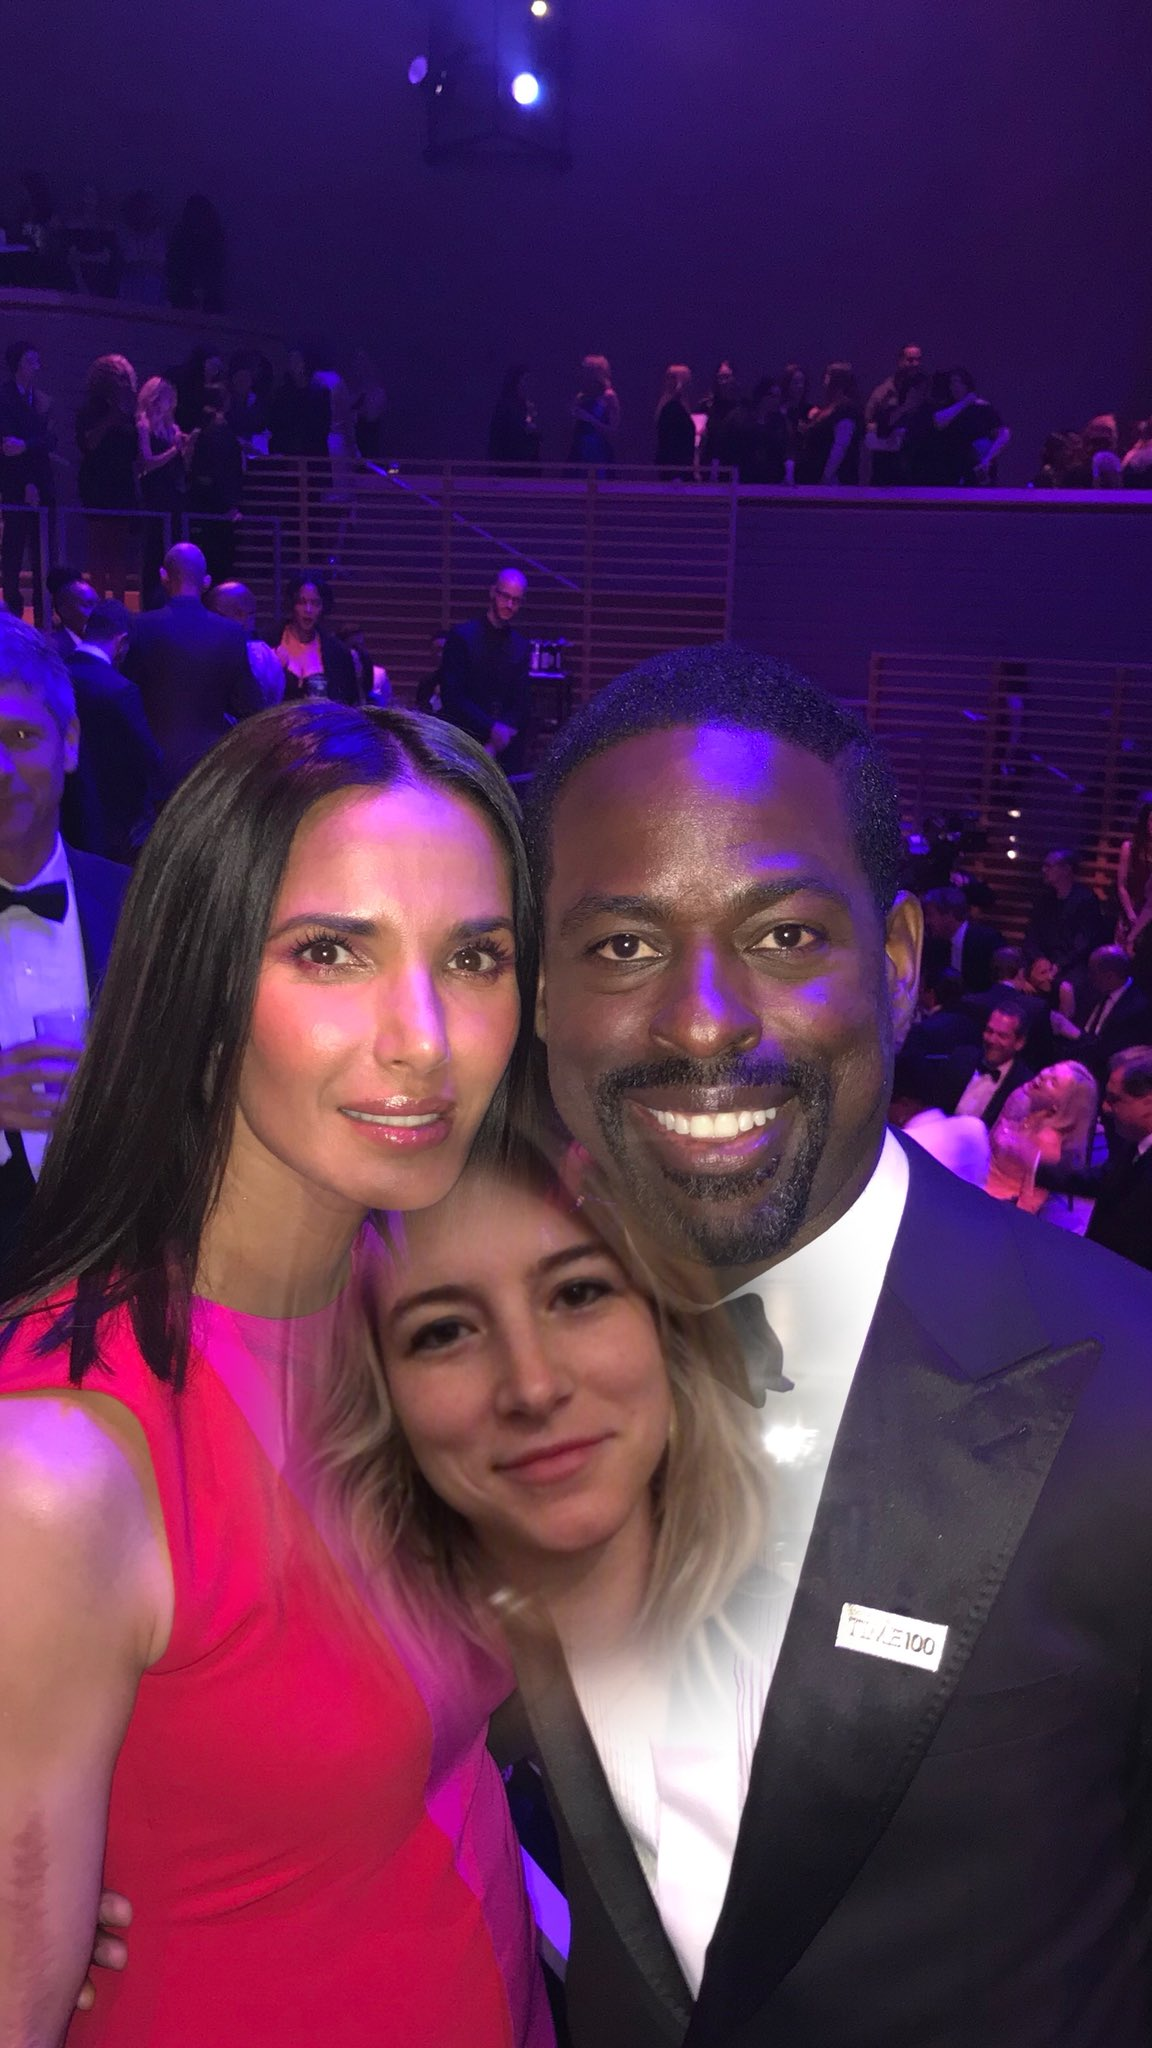 @padmalakshmi: My assistant *fixed* the previous image ??? #ThisIsUs #BigThree https://t.co/gfgAbfd6Ew